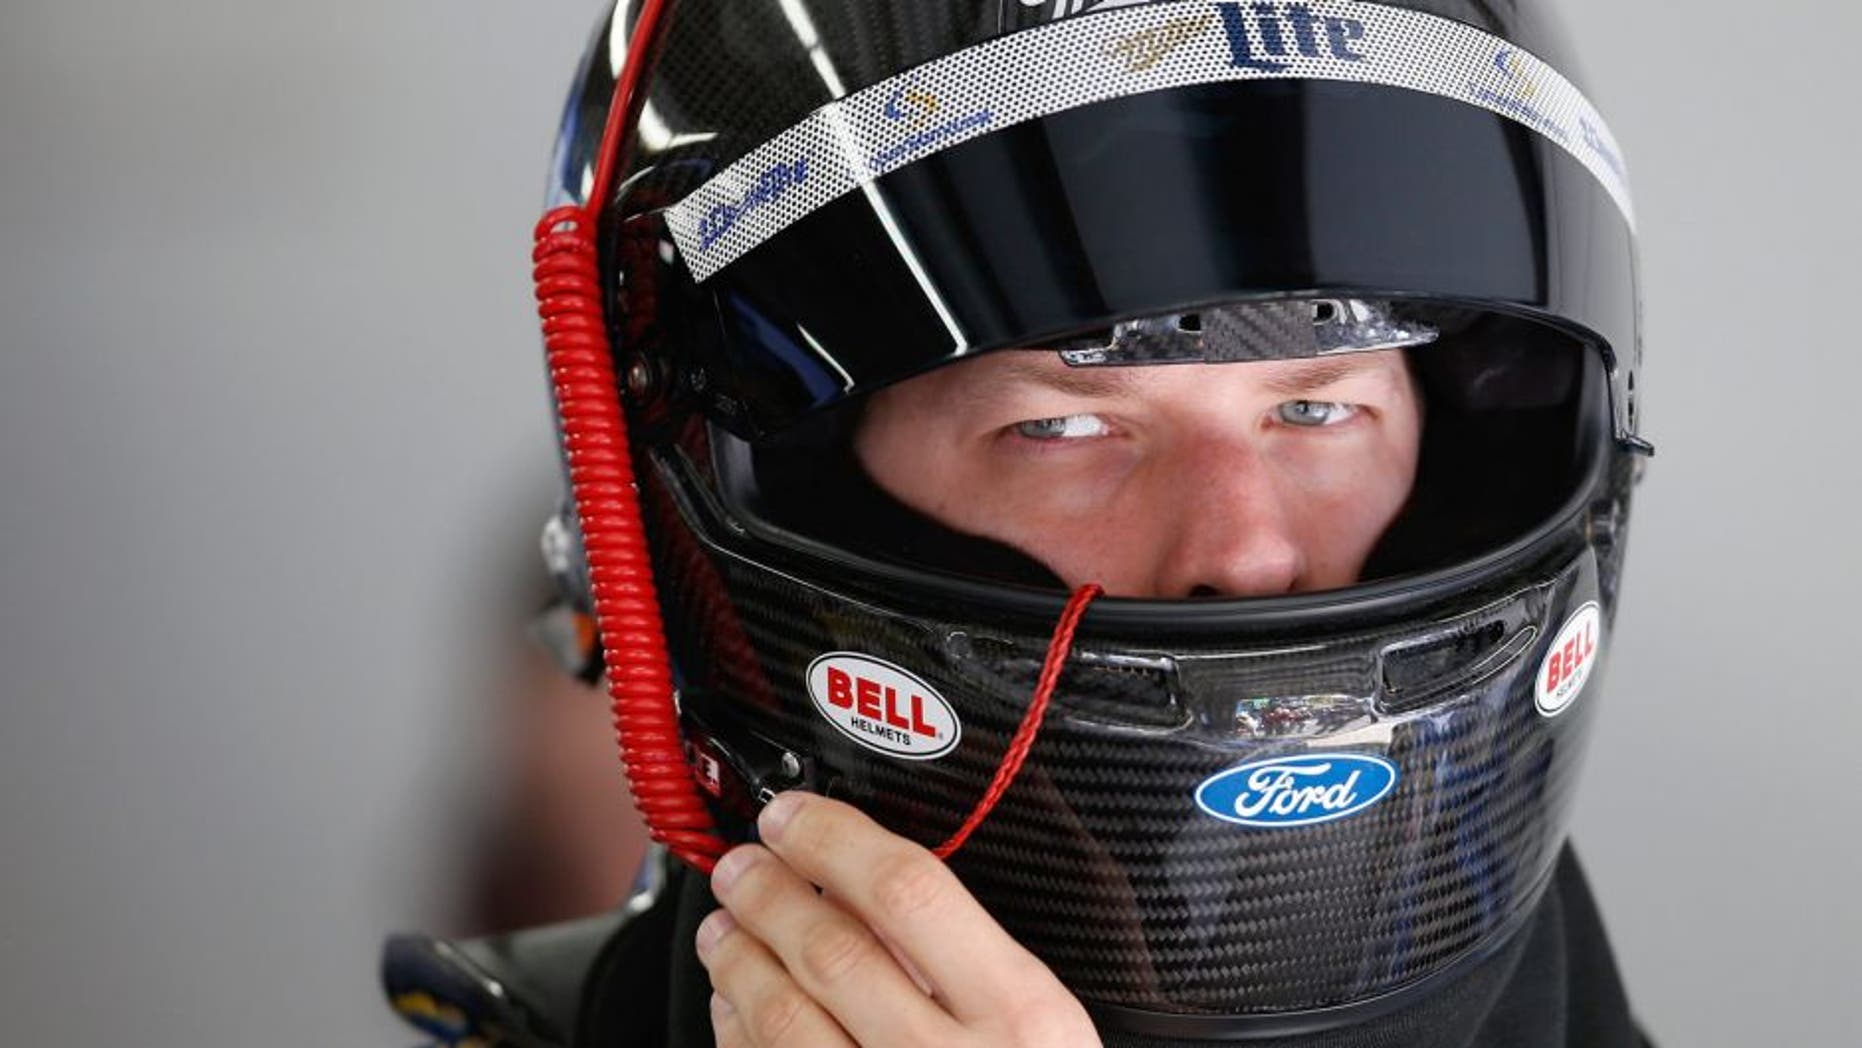 LOUDON, NH - SEPTEMBER 26: Brad Keselowski, driver of the #2 Miller Lite Ford, prepares his equipment in the garage area during practice for the NASCAR Sprint Cup Series Sylvania 300 at New Hampshire Motor Speedway on September 26, 2015 in Loudon, New Hampshire. (Photo by Todd Warshaw/NASCAR via Getty Images)